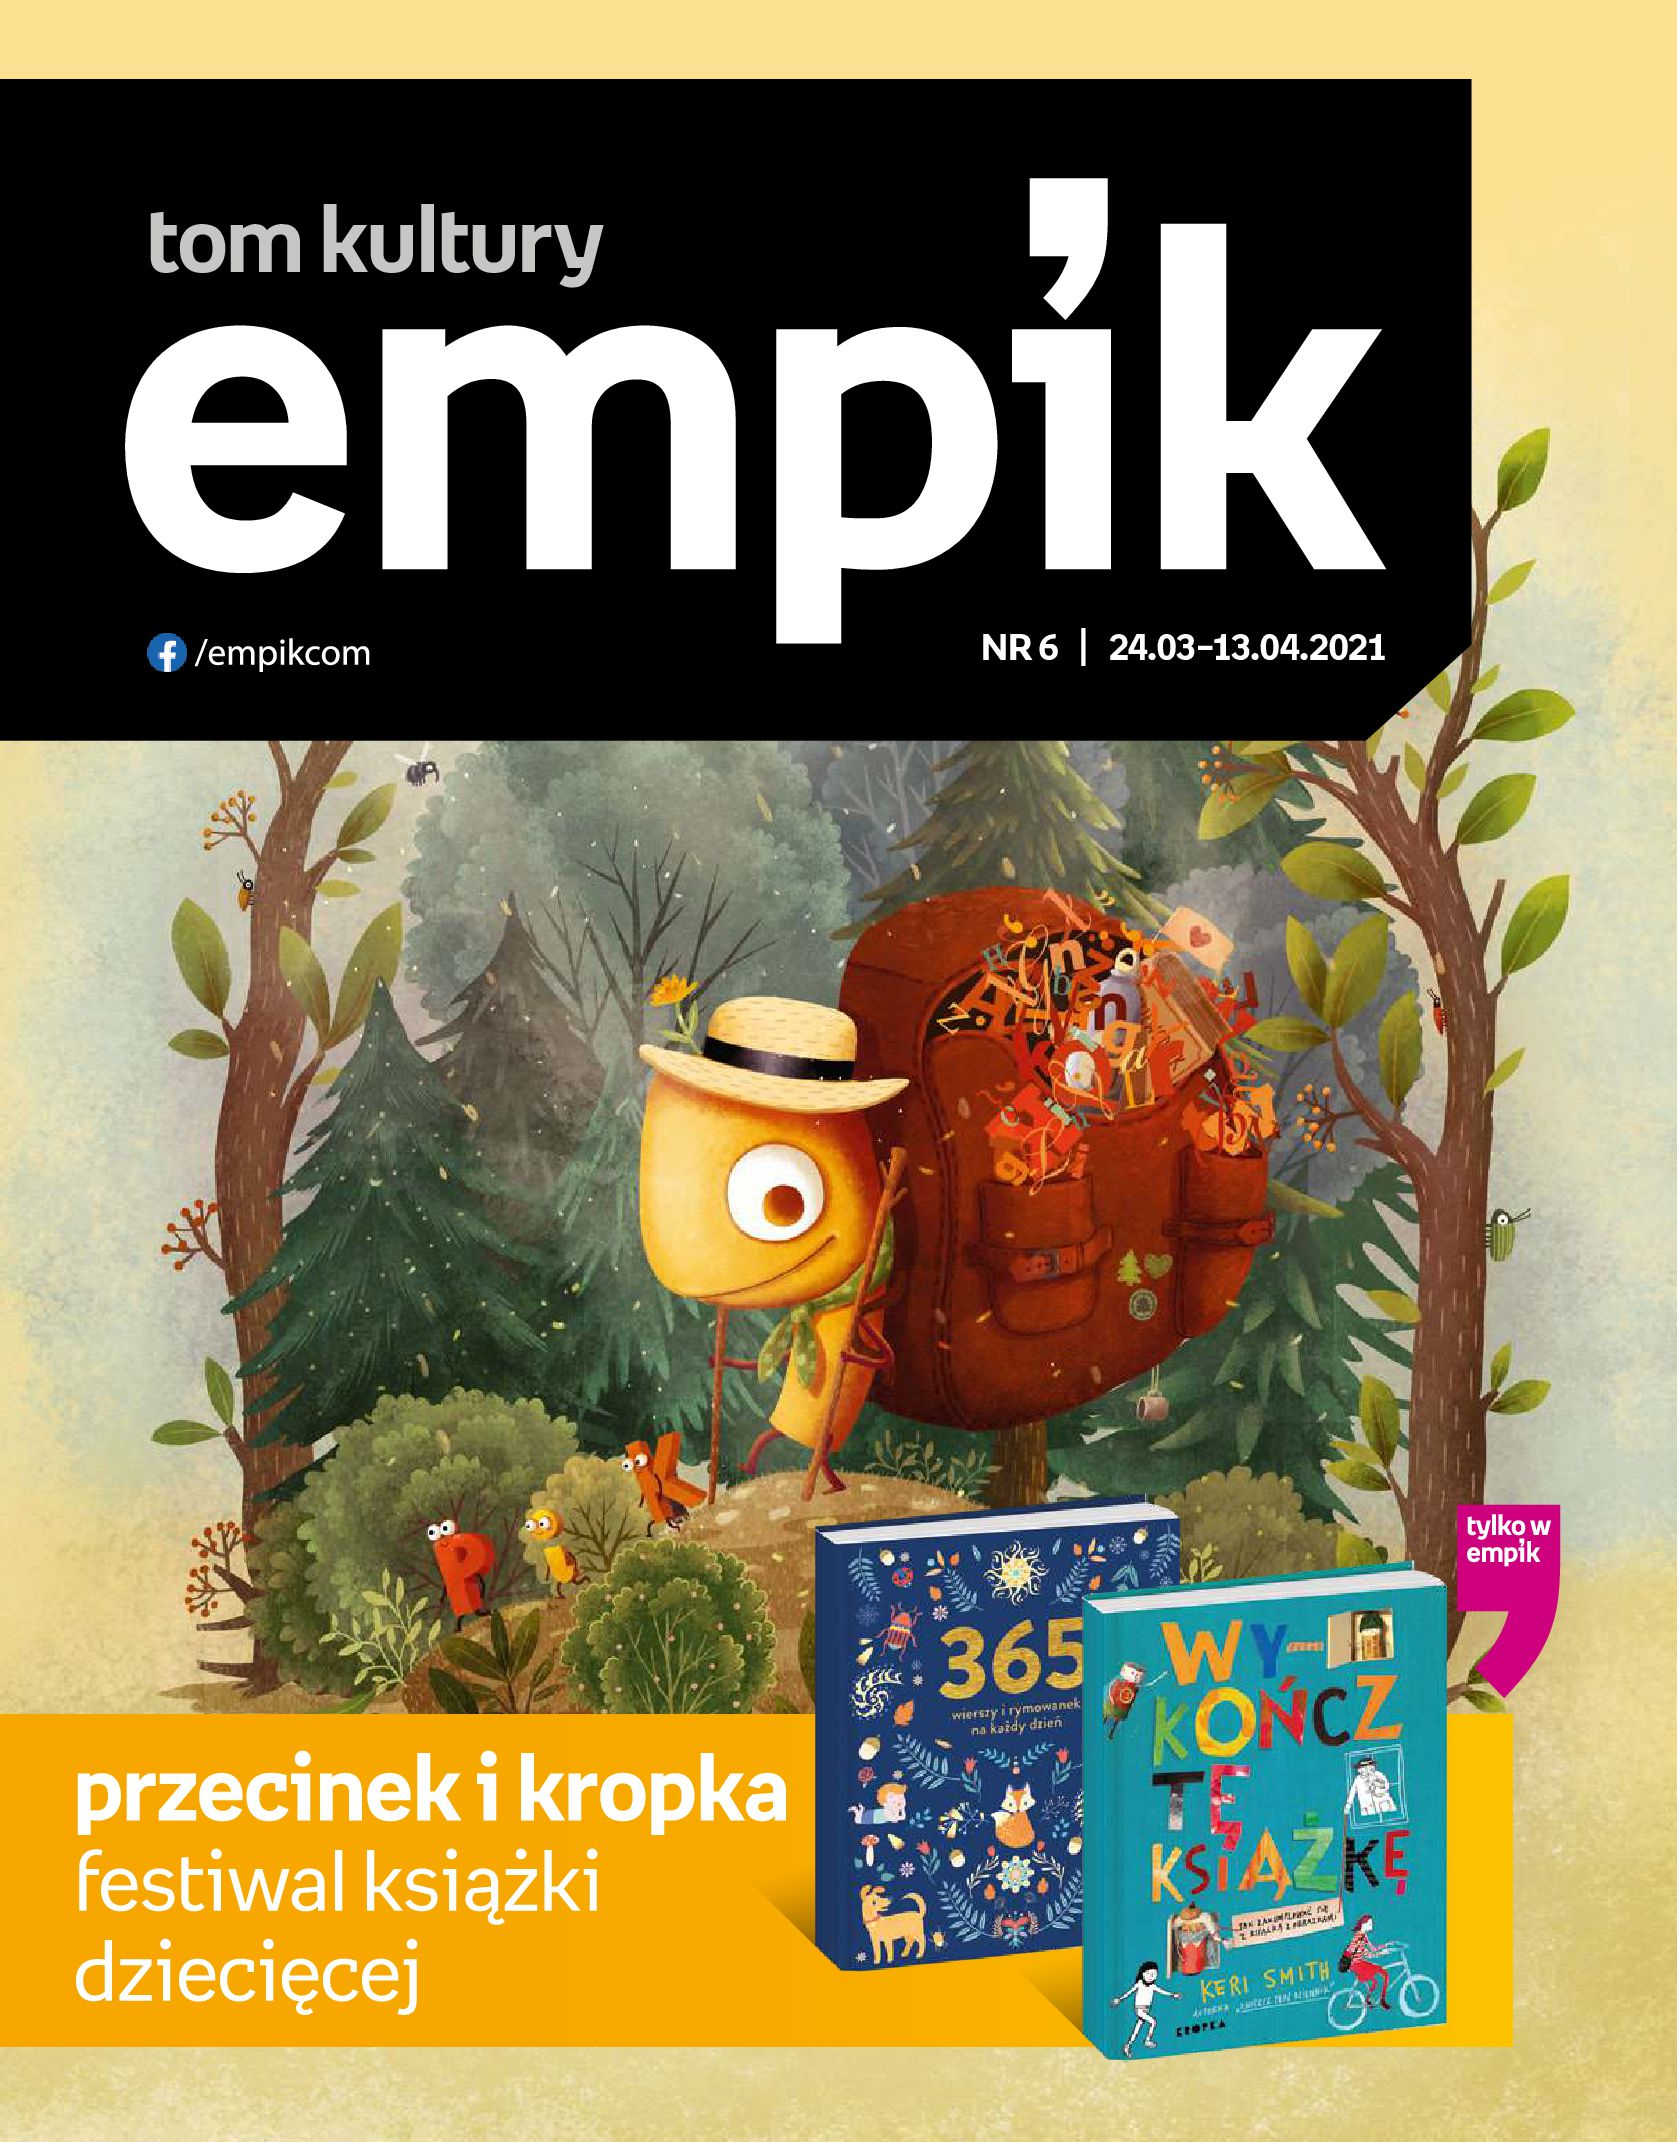 Empik:  Tom kultury 23.03.2021